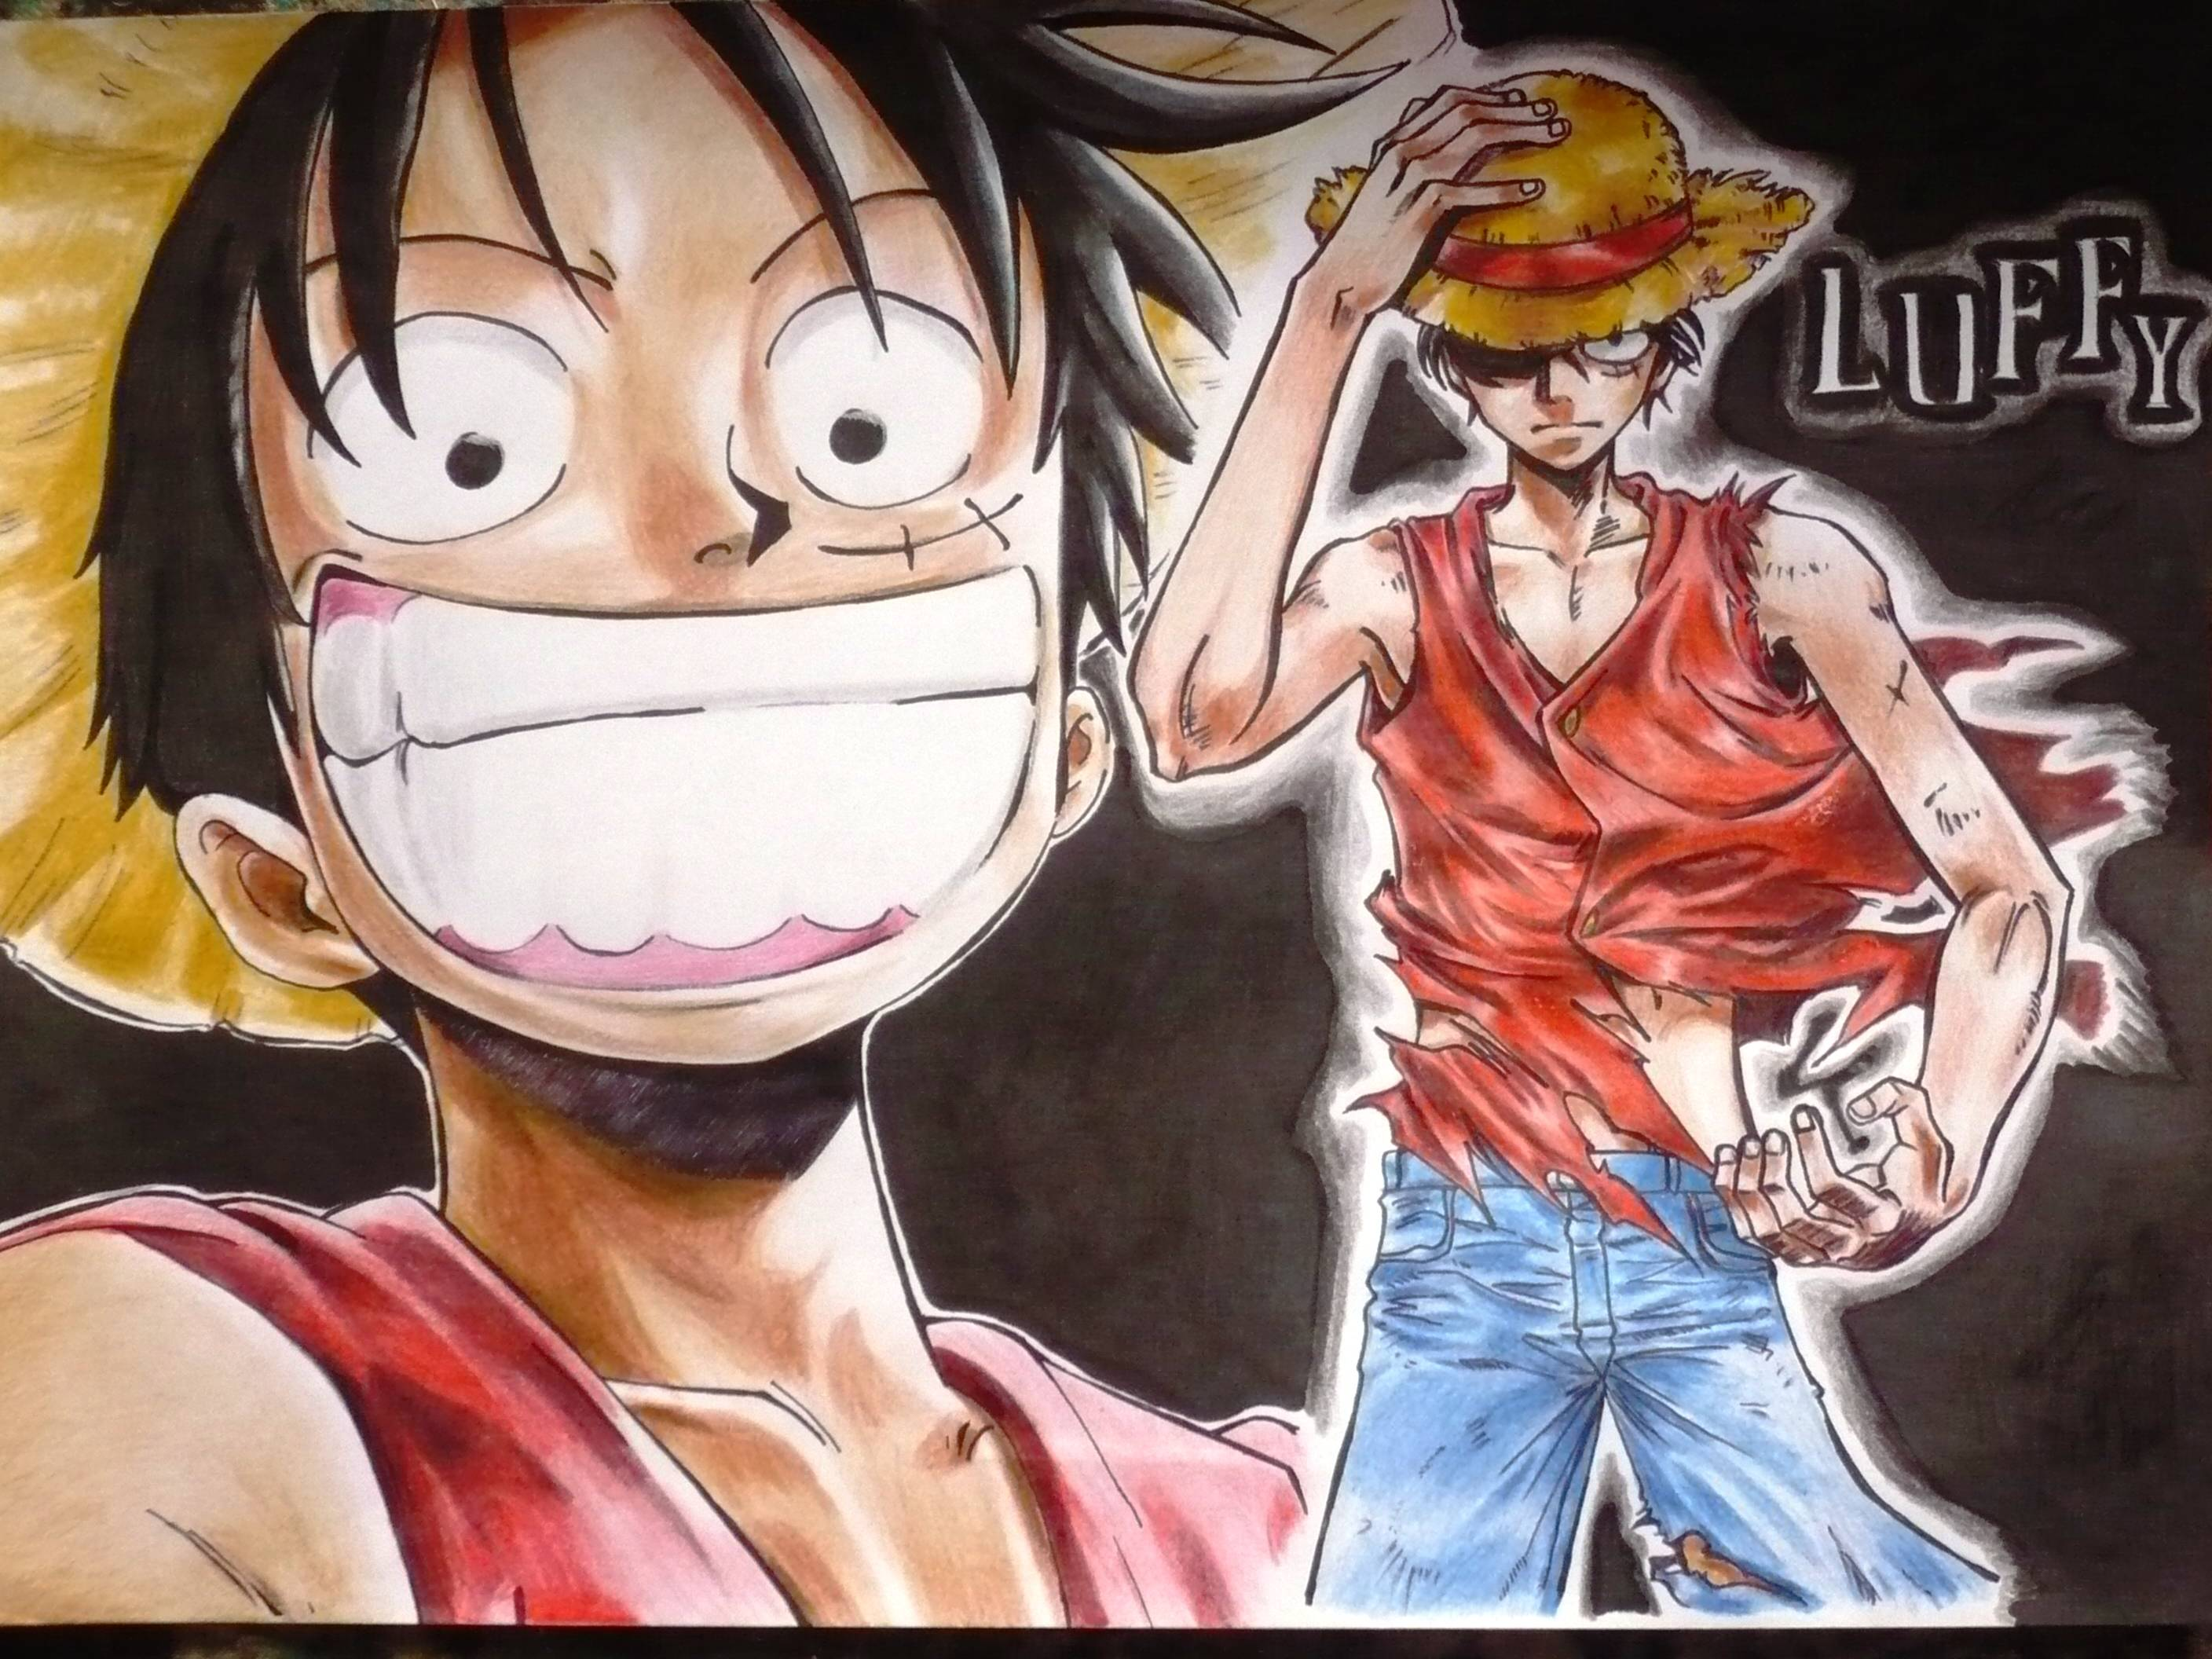 monkey d luffy one piece wallpaper hd for android cartoons images